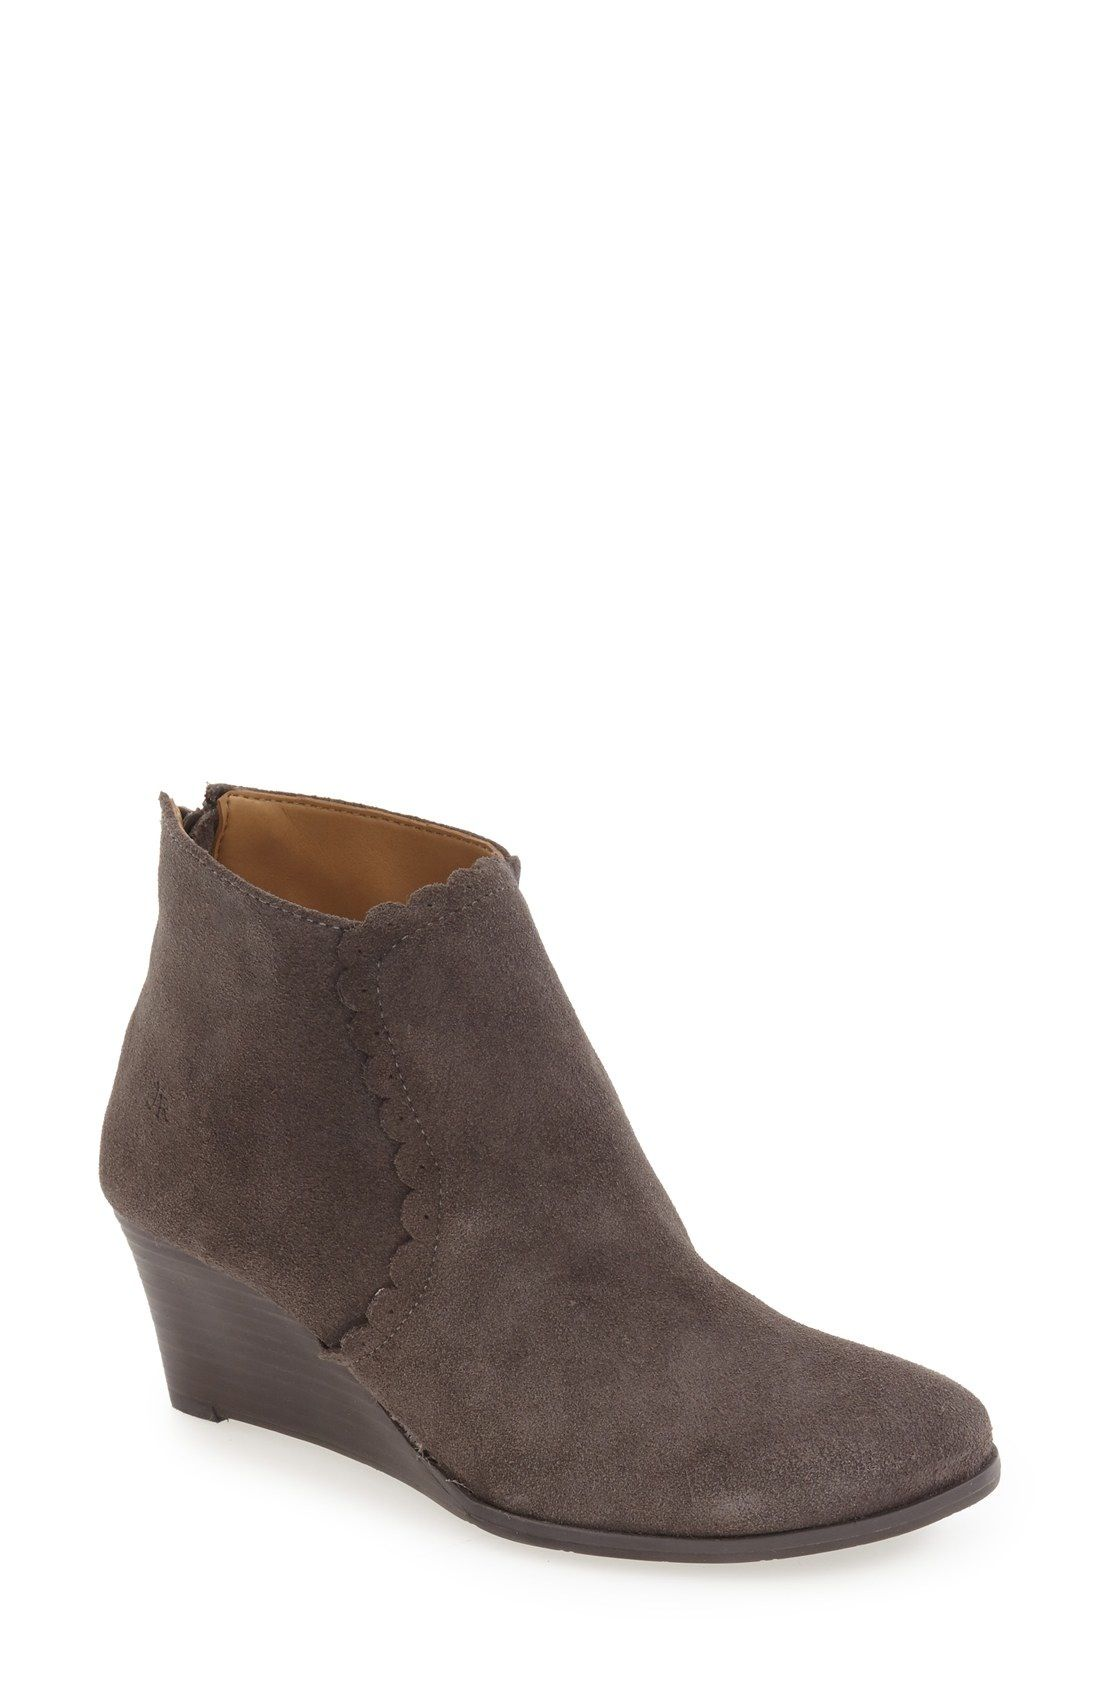 6993d94d2410 Jack Rogers  Emery  Wedge Bootie (Women) available at  Nordstrom ...